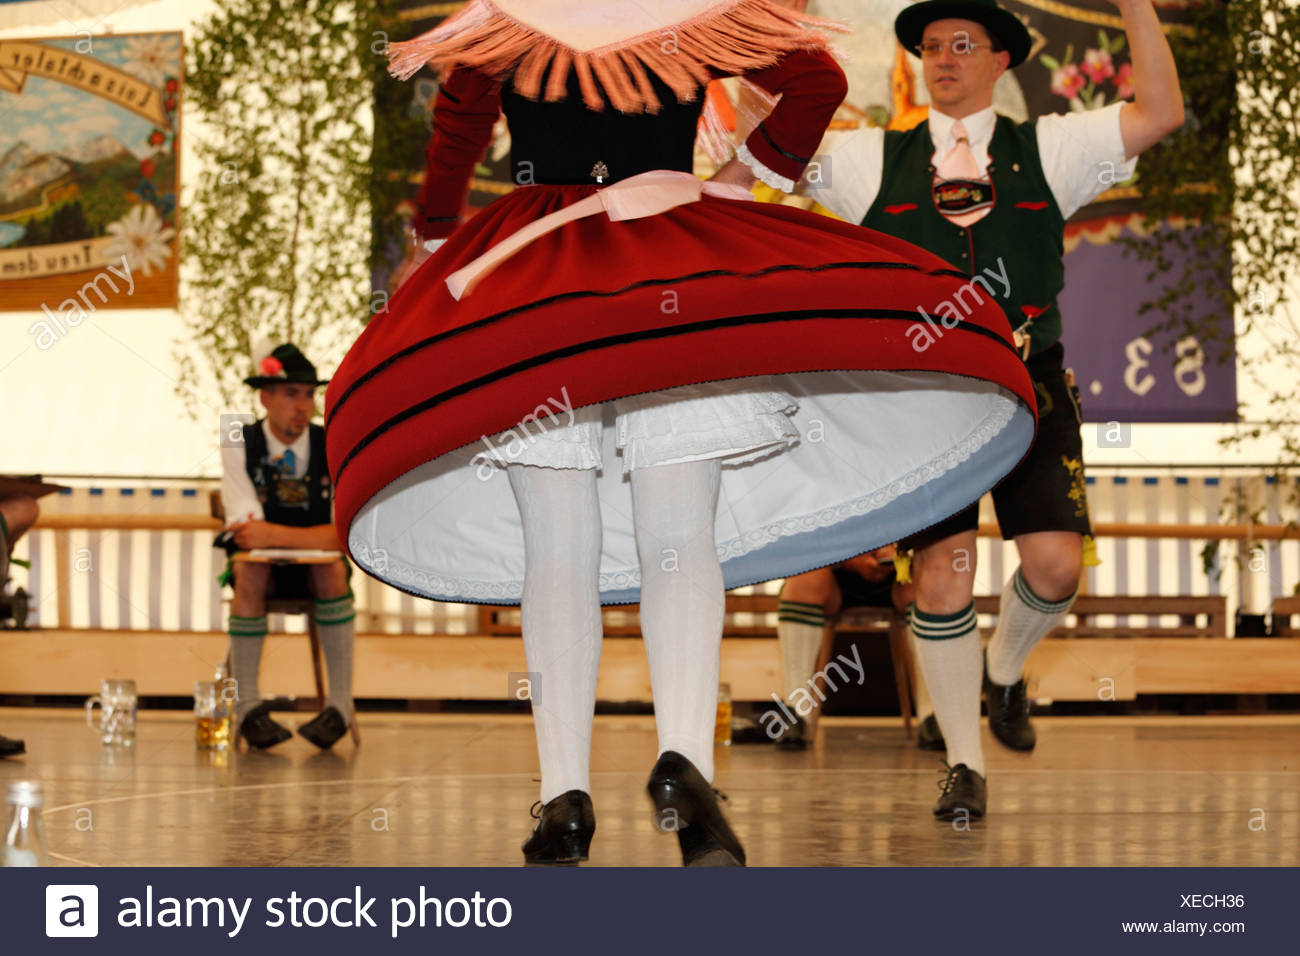 Schuhplattler, traditional folk dancers, 83rd Loisachgaufest in Neufahrn near Egling, Upper Bavaria, Bavaria, Germany, Europe Stock Photo